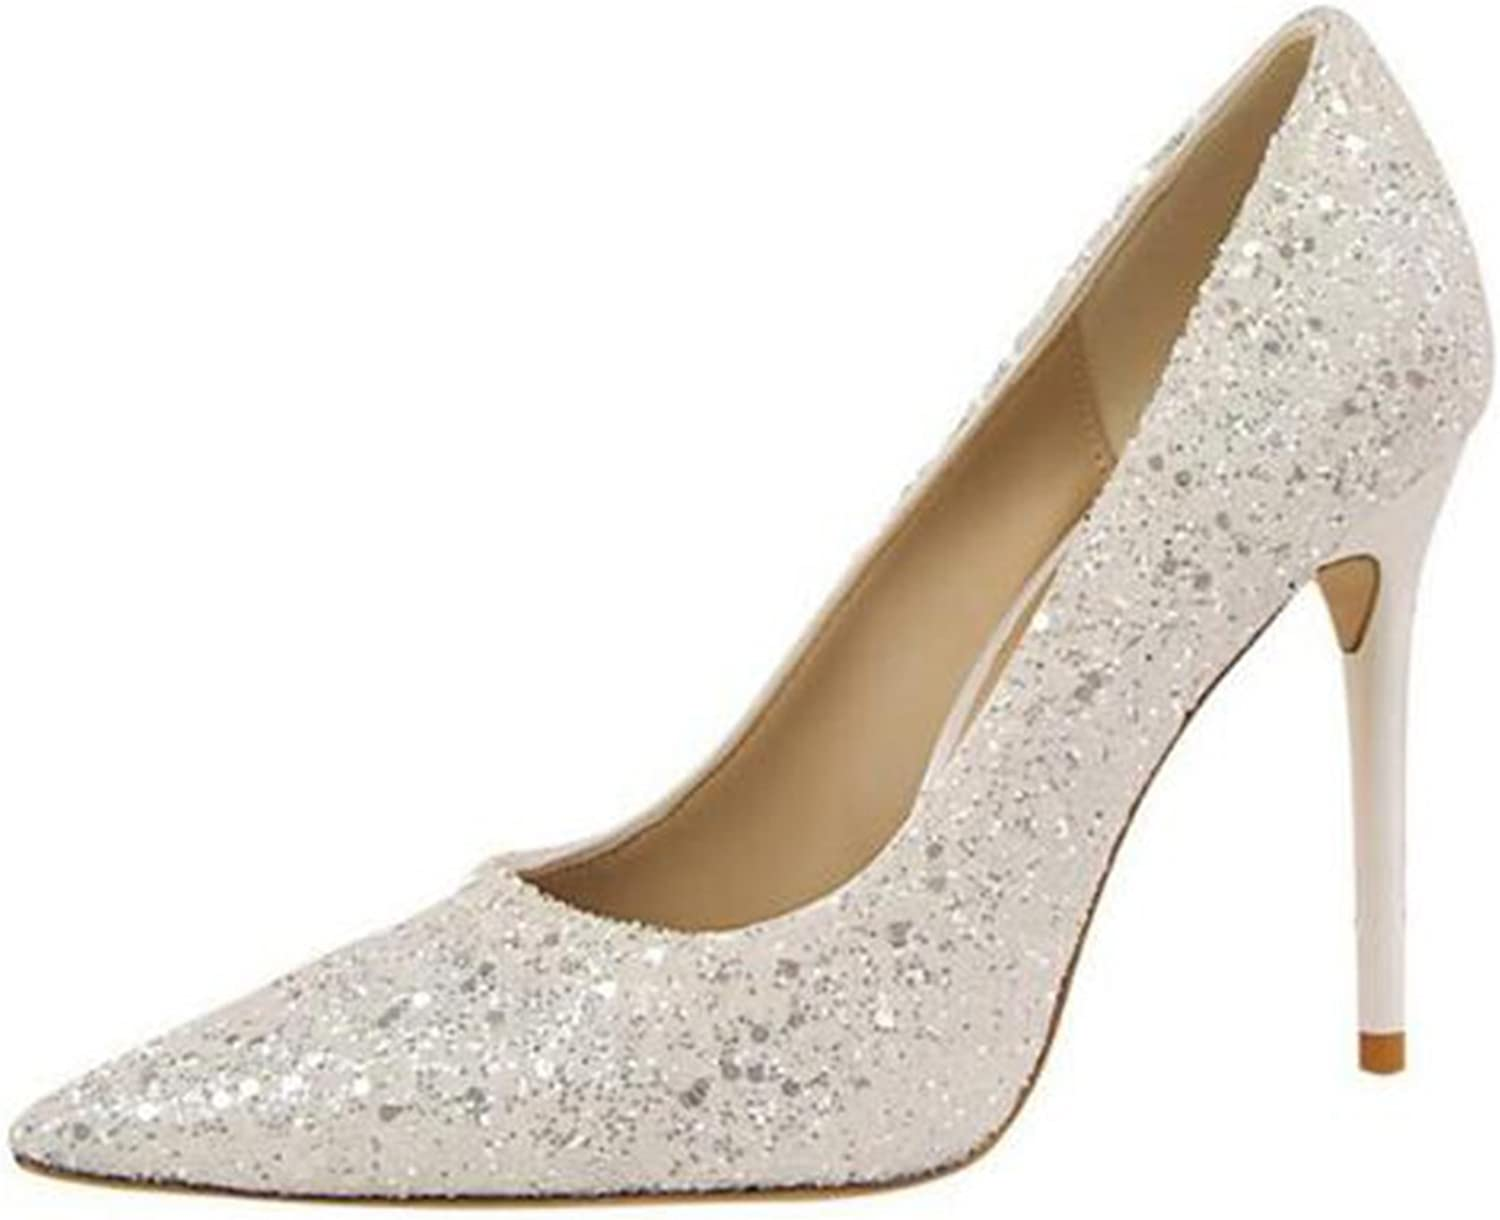 COVOYYAR Women's Pumps Sexy High Heel shoes Shining Fashion Wedding shoes